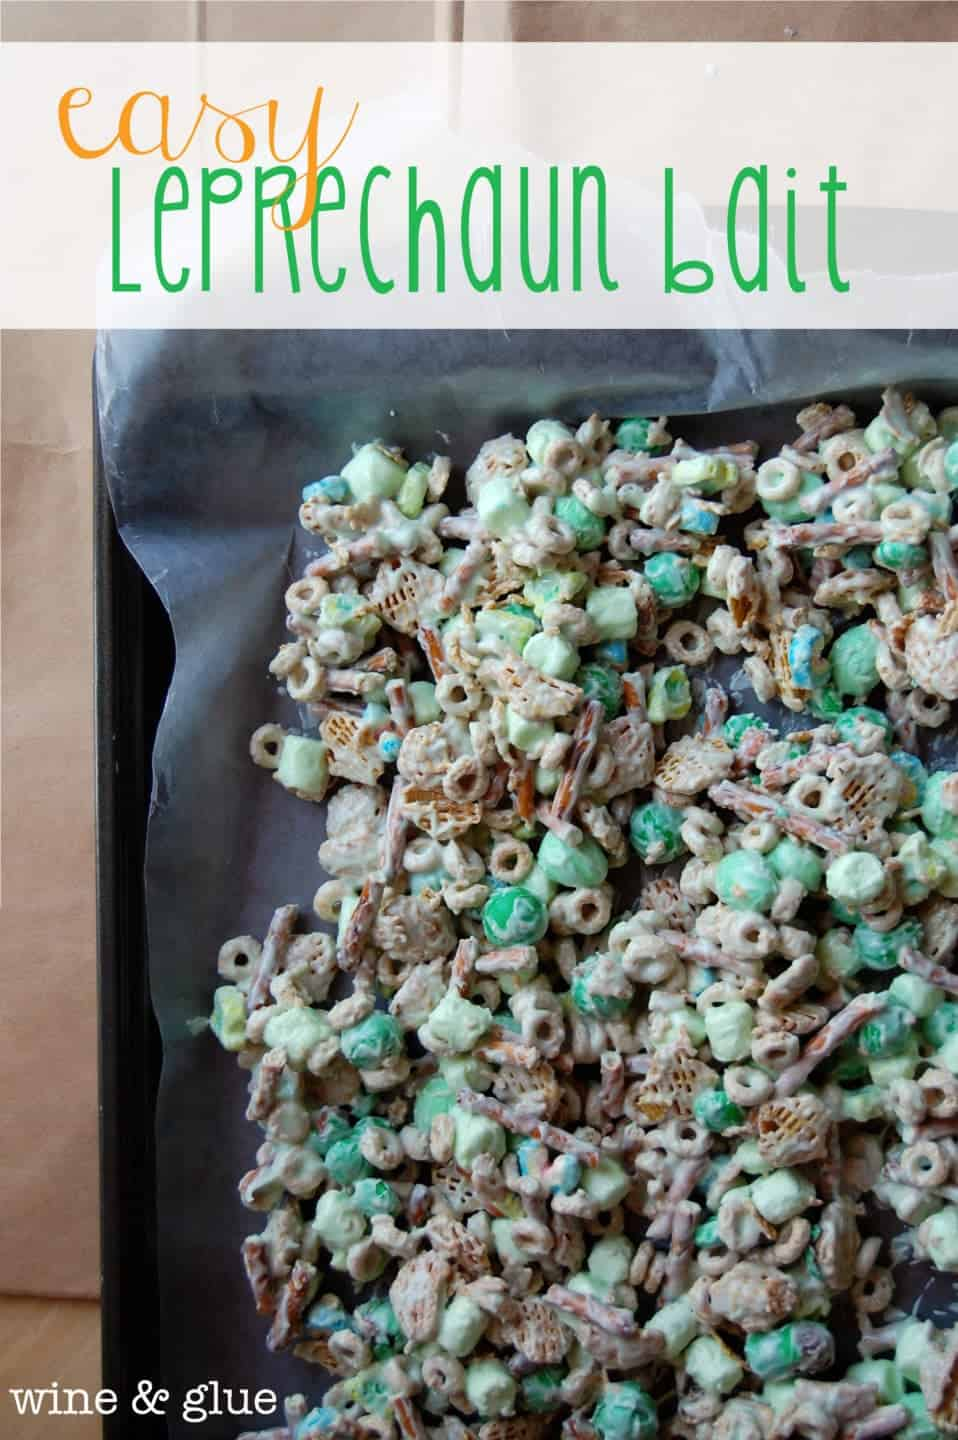 How to Trap a Leprechaun {Easy Leprechaun Bait}